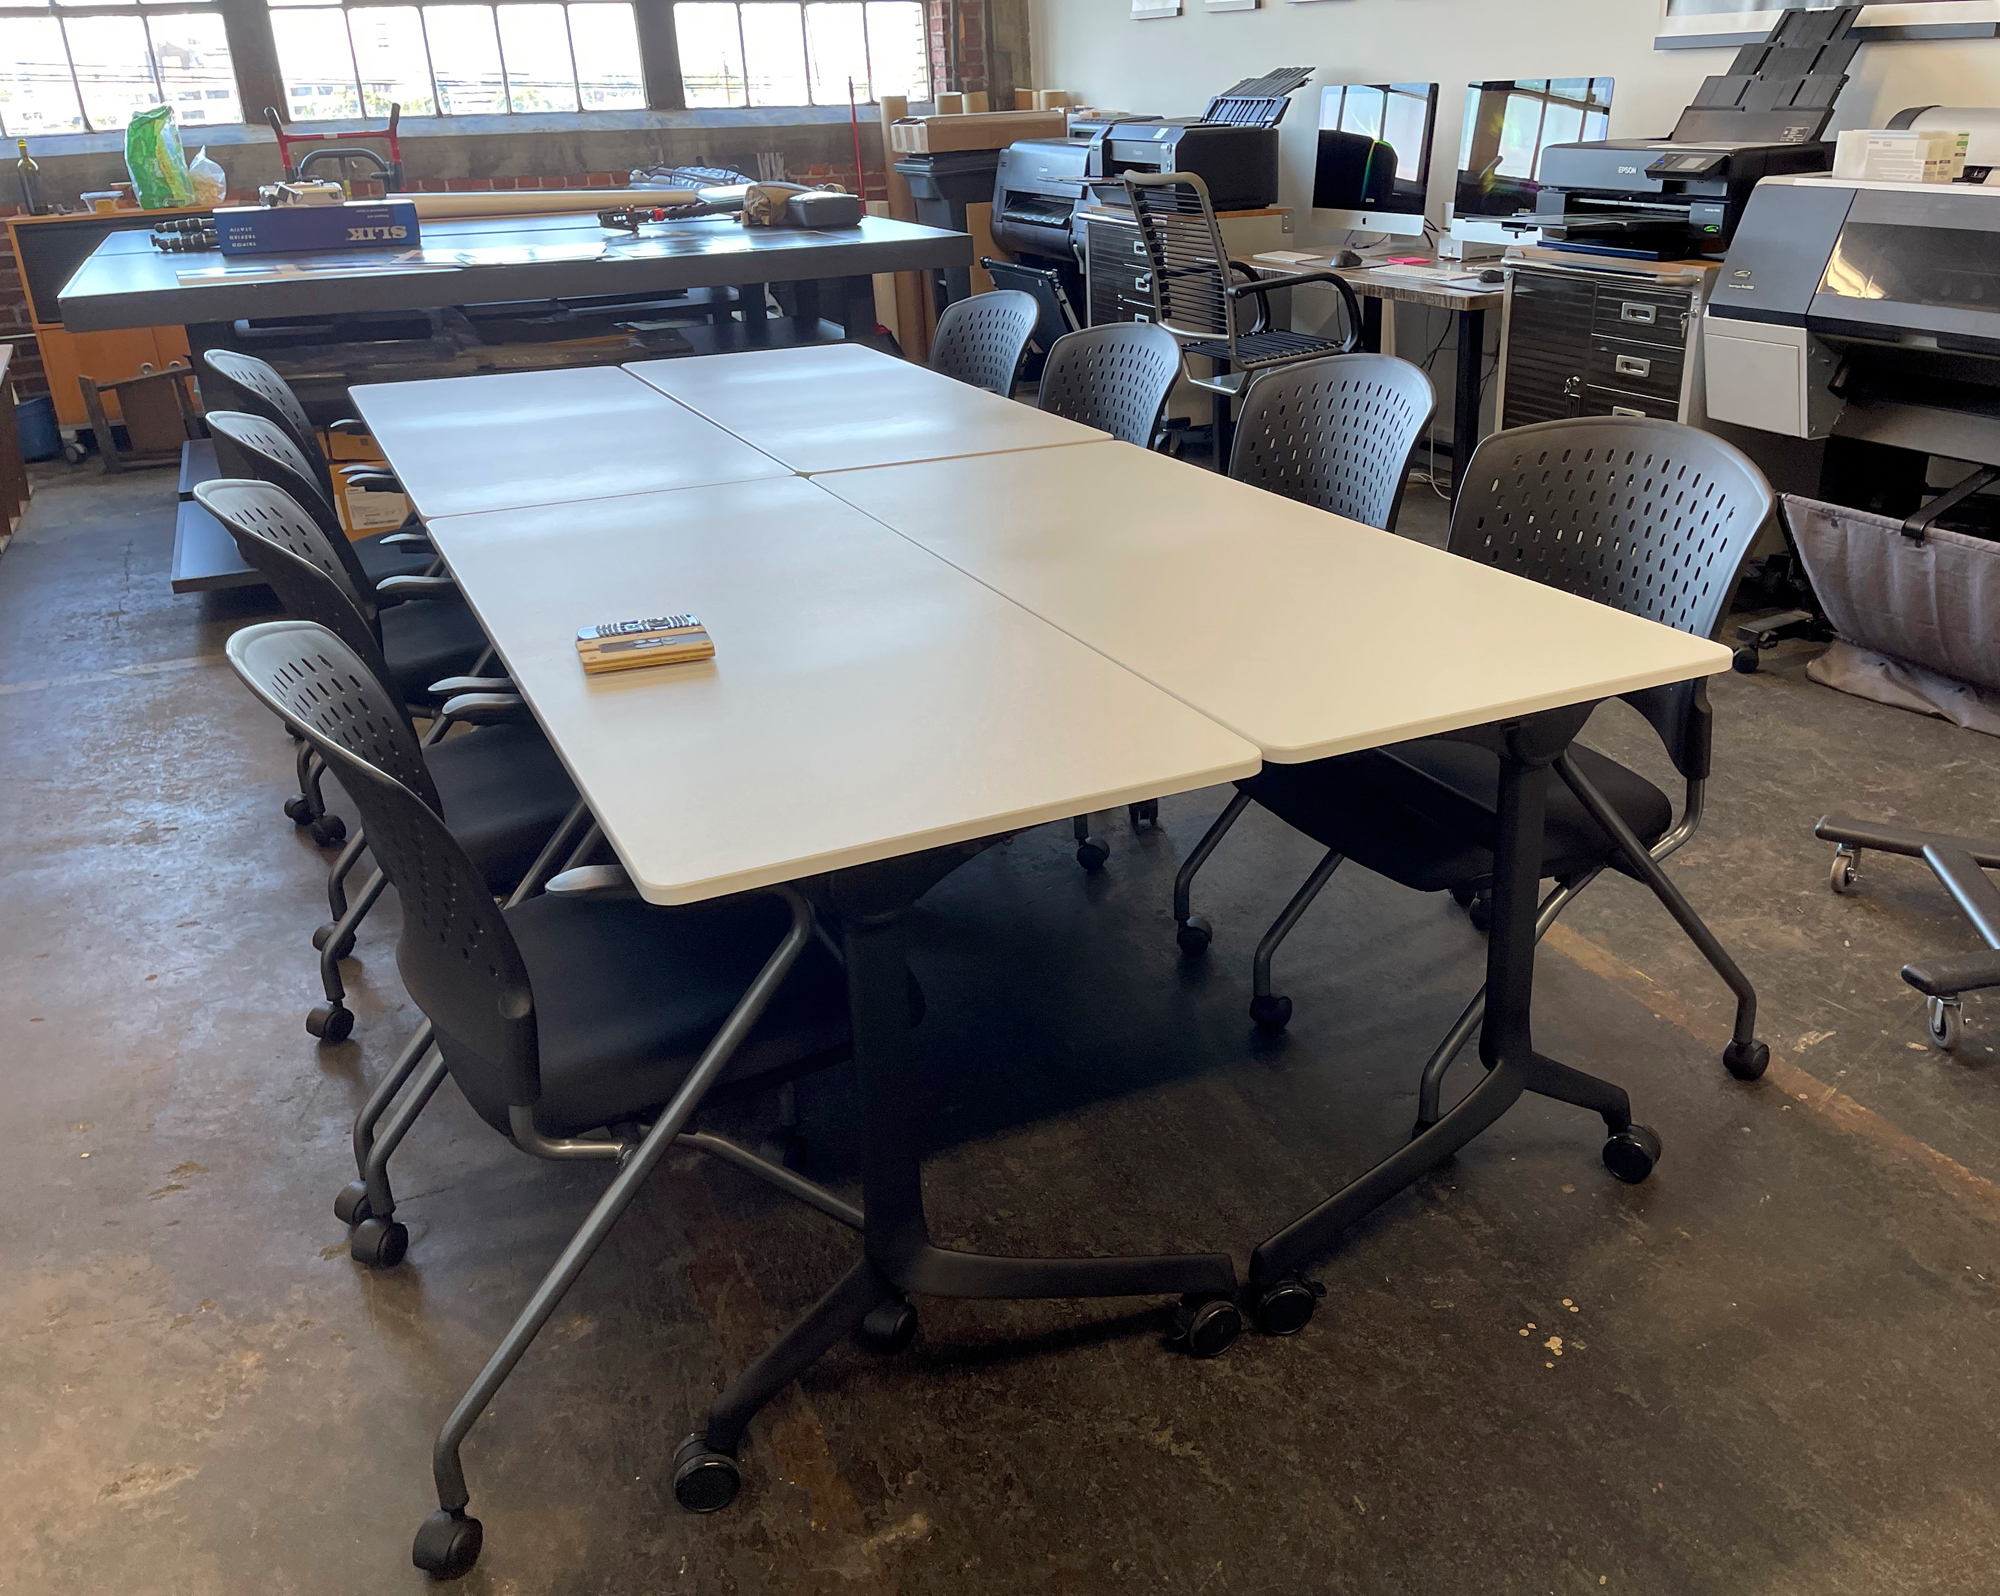 Our classroom tables can be configured a few ways